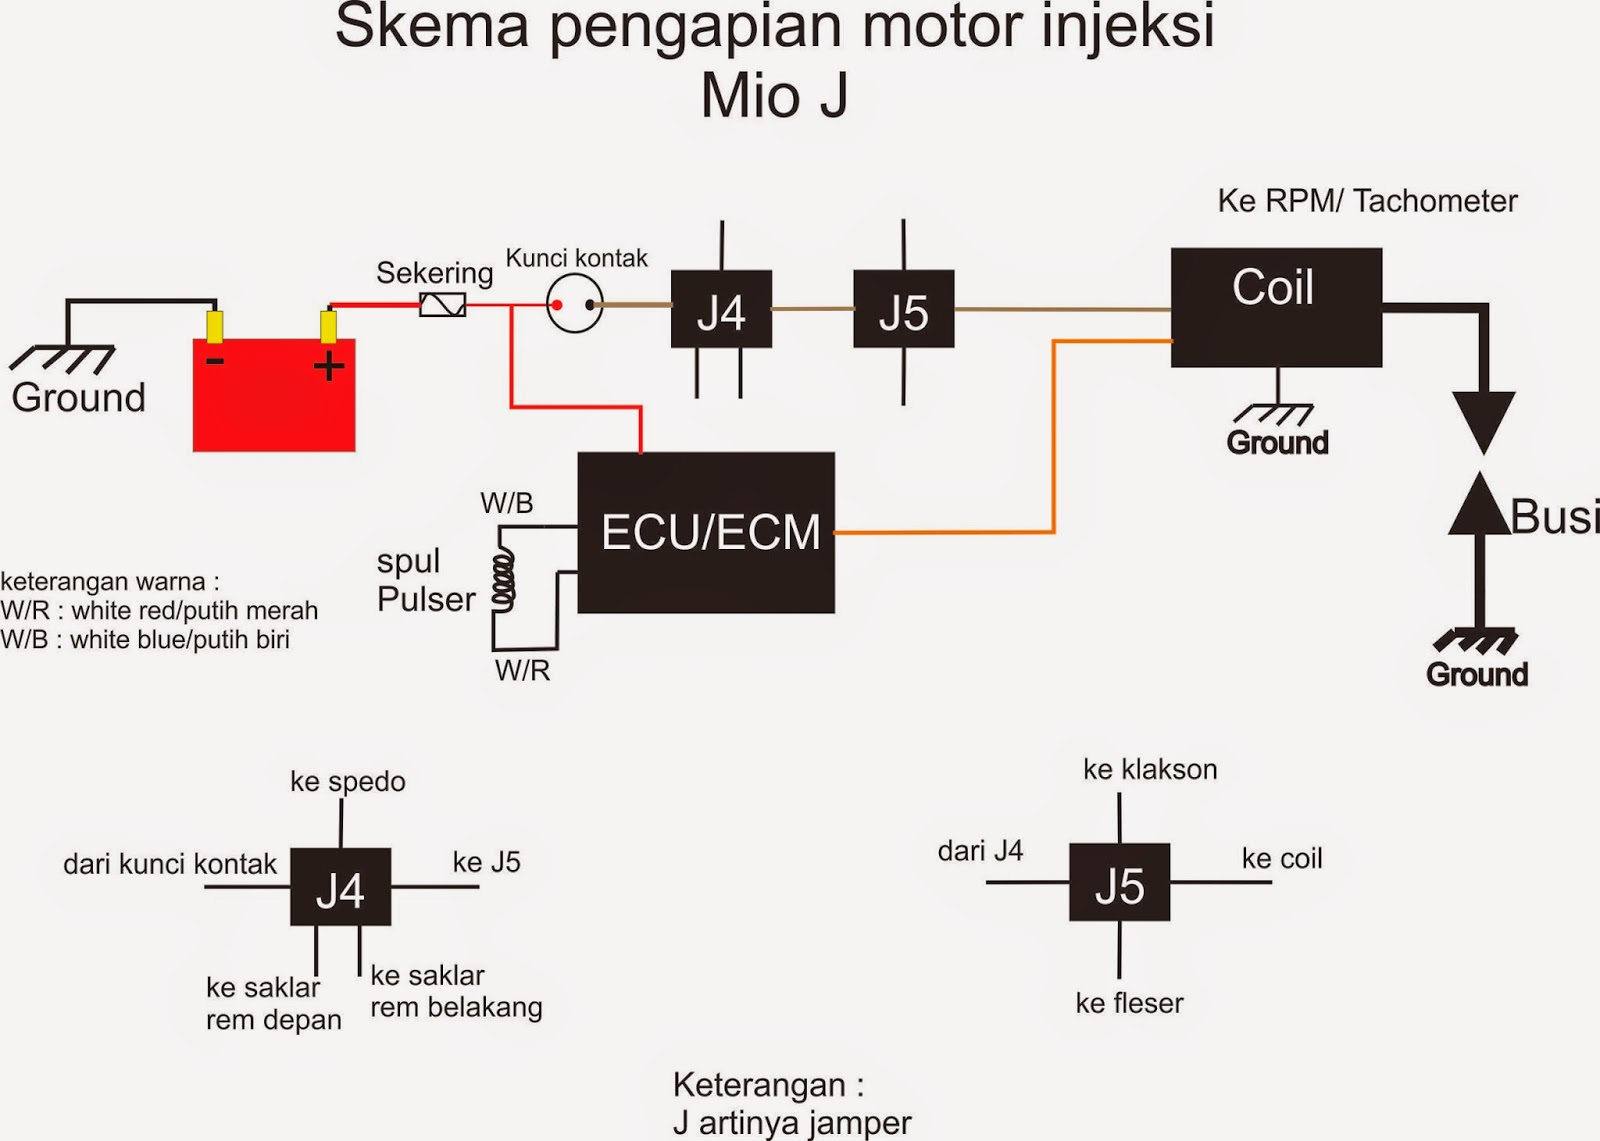 Wiring diagram mio gt wiring diagram for light switch wiring diagram yamaha mio j free download wiring diagram xwiaw rh xwiaw us harga mio gt motor yamaha mio gt cheapraybanclubmaster Image collections